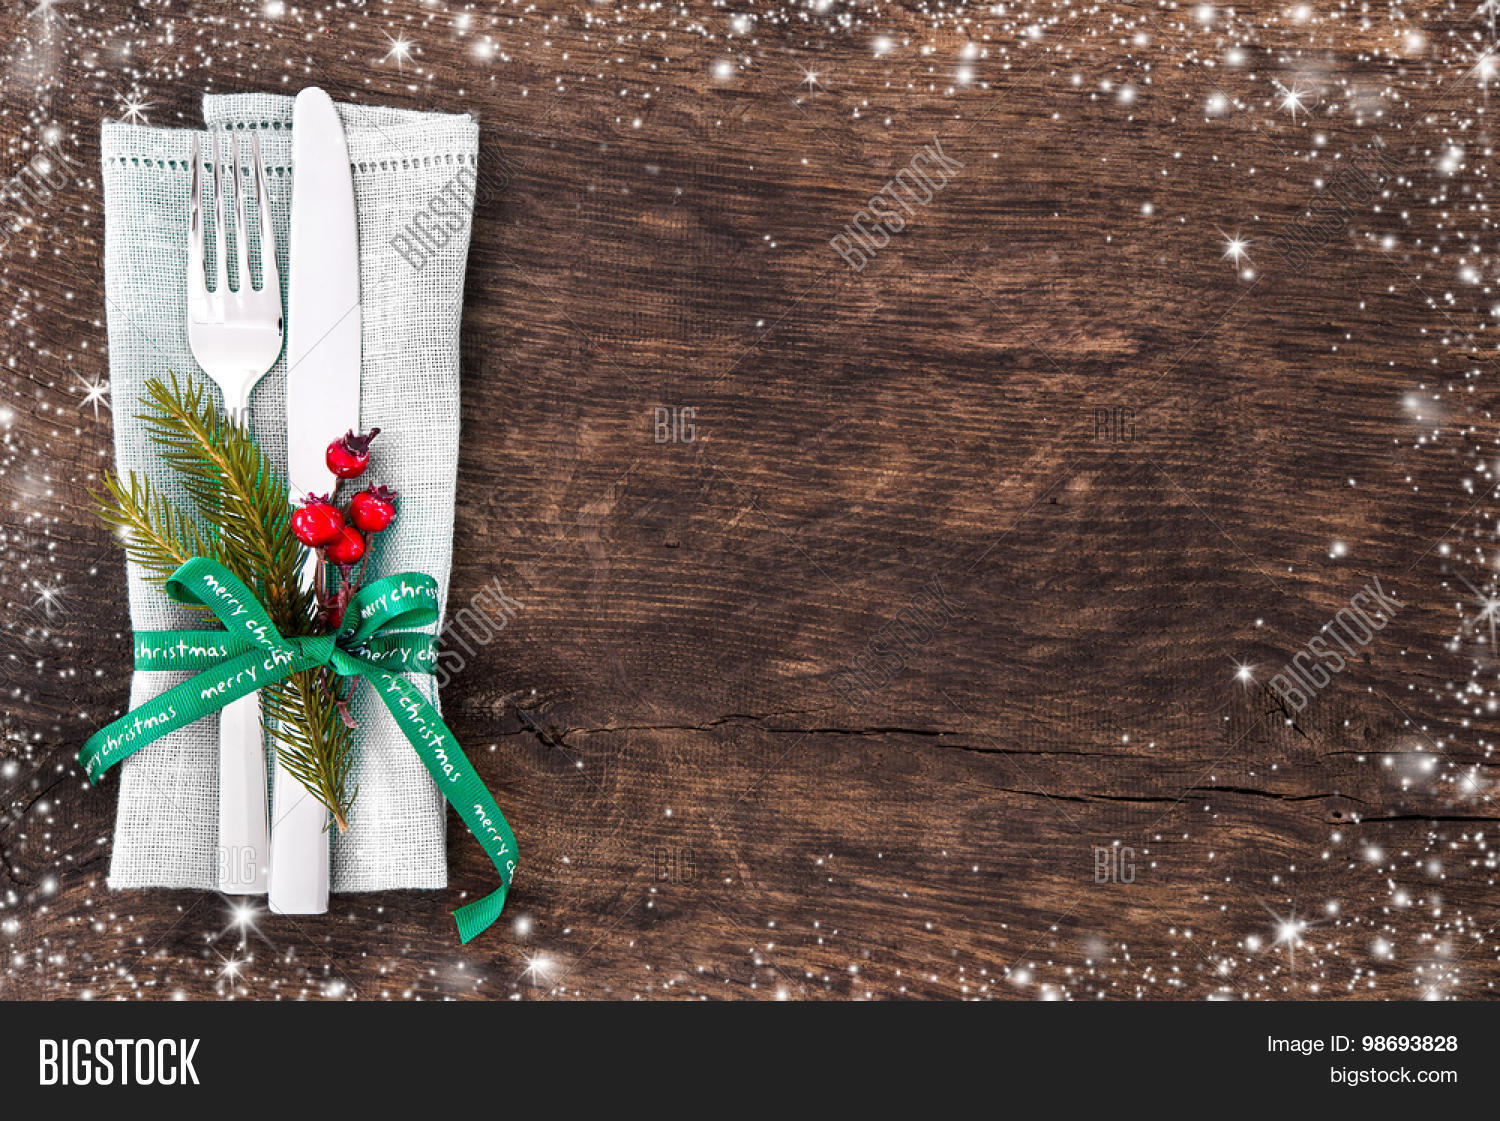 Christmas Table Place Setting Image & Photo | Bigstock